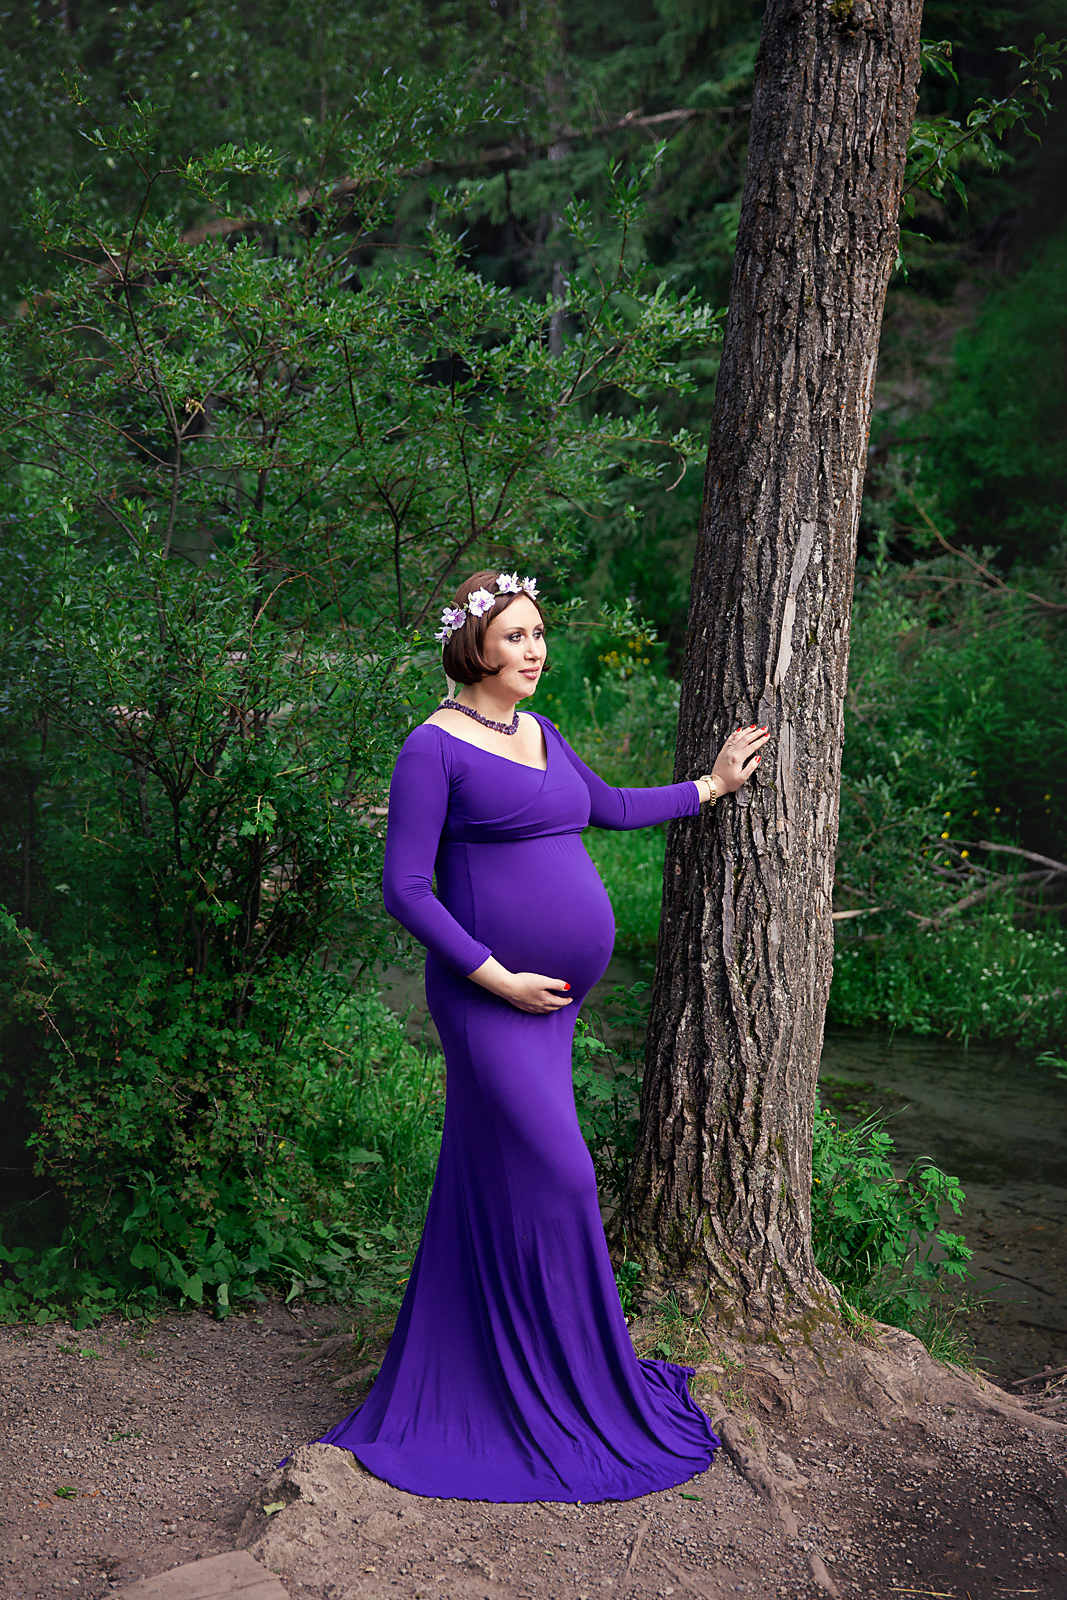 Mother-to-be in a purple gown